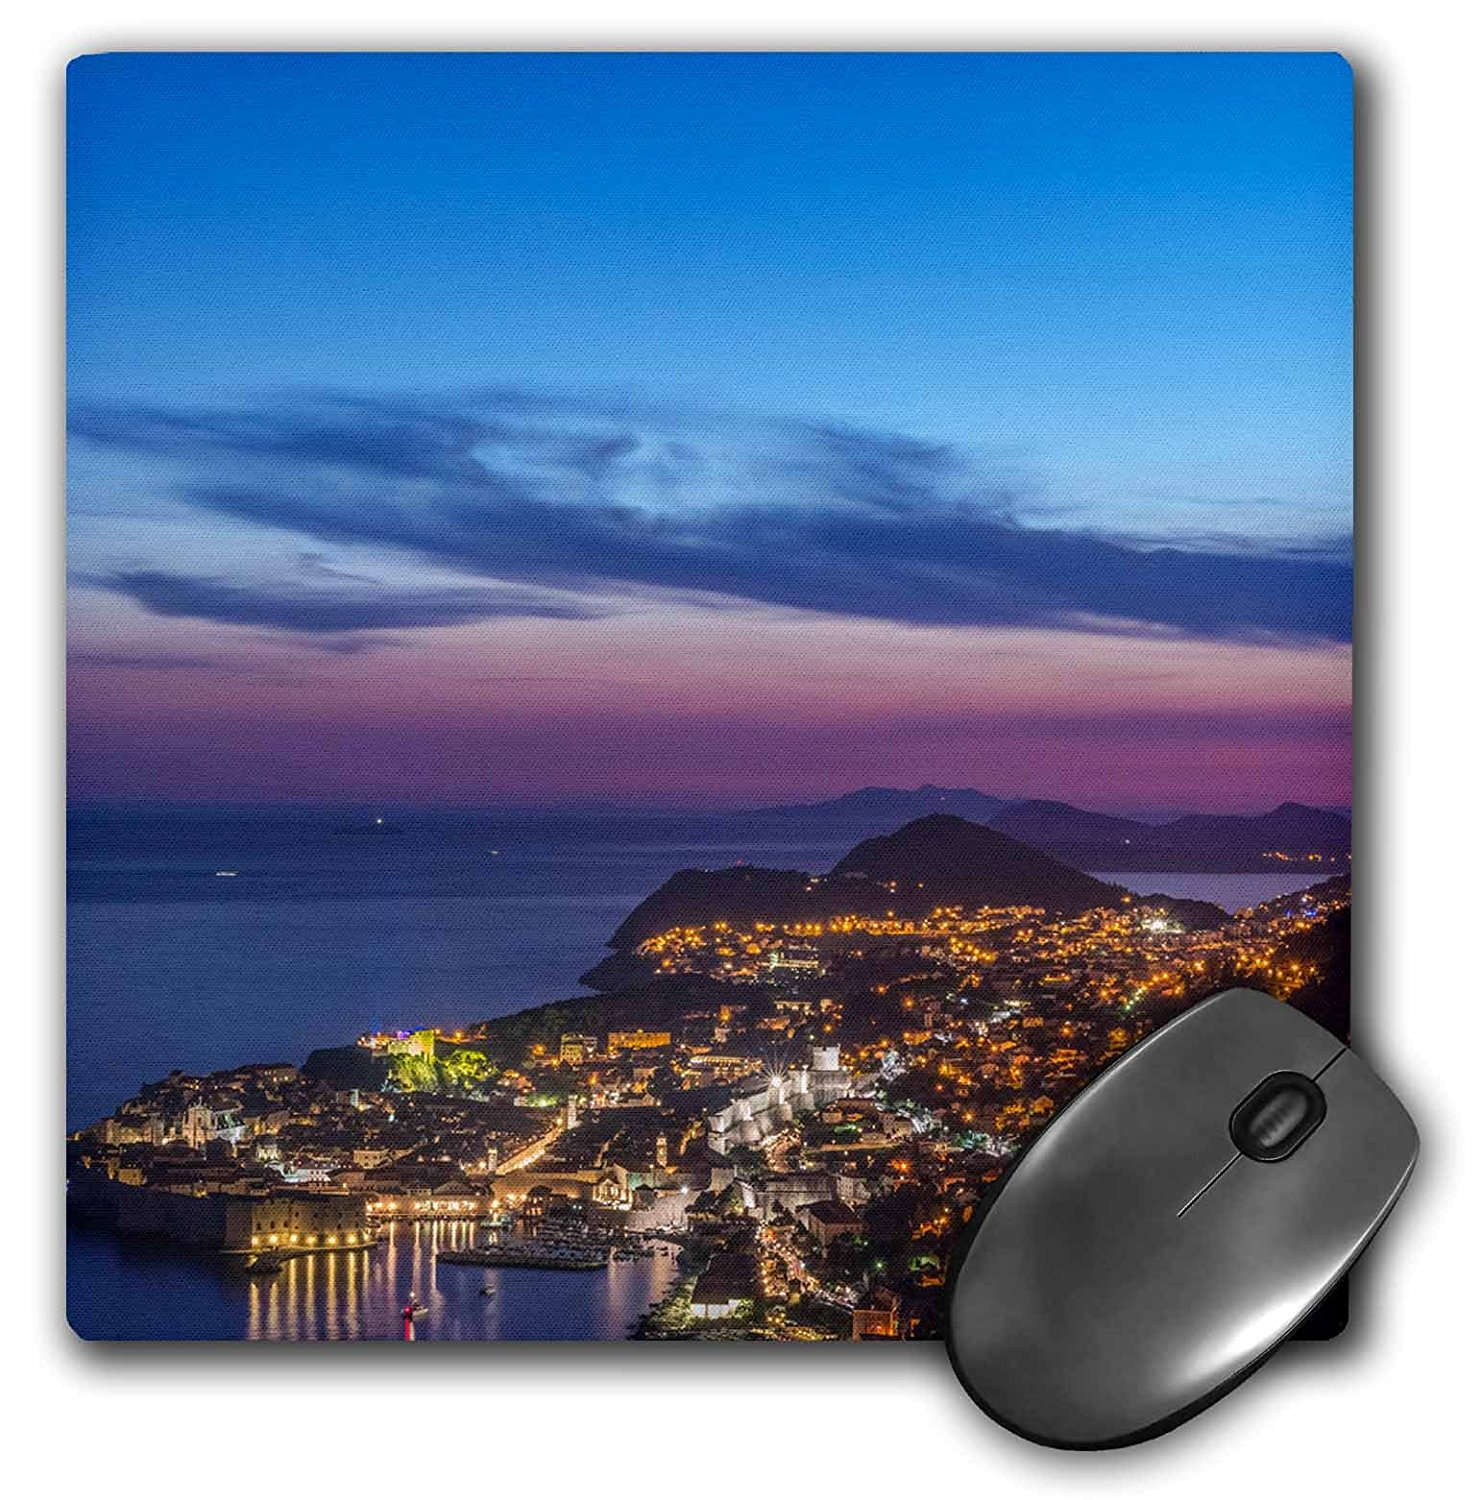 Danita Delimont - Croatia - Croatia, Dubrovnik, Looking Down on Dubrovnik Old Town at Twilight - MousePad (mp_228019_1)